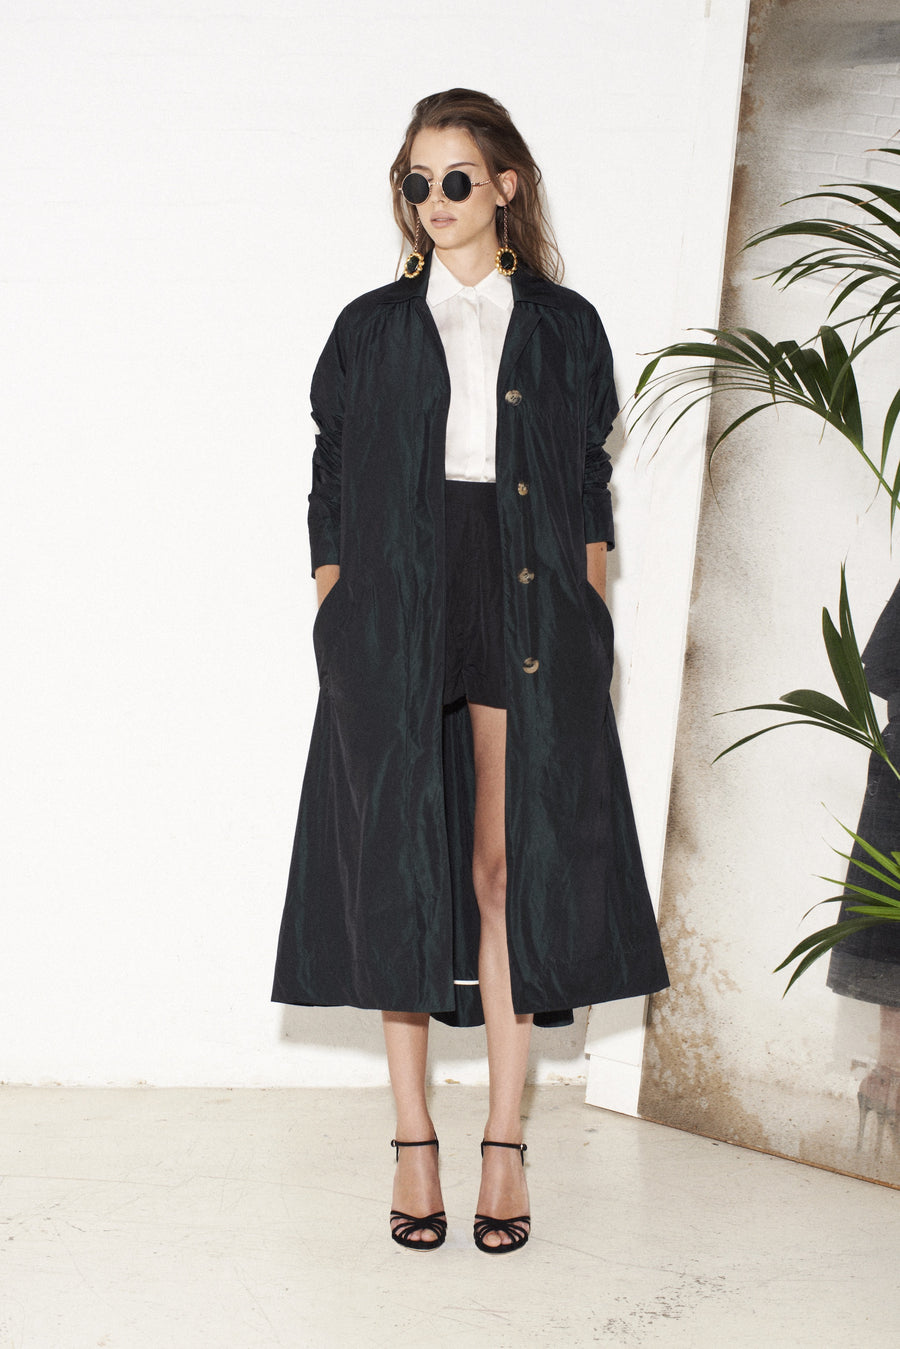 SS2013 / Look 4